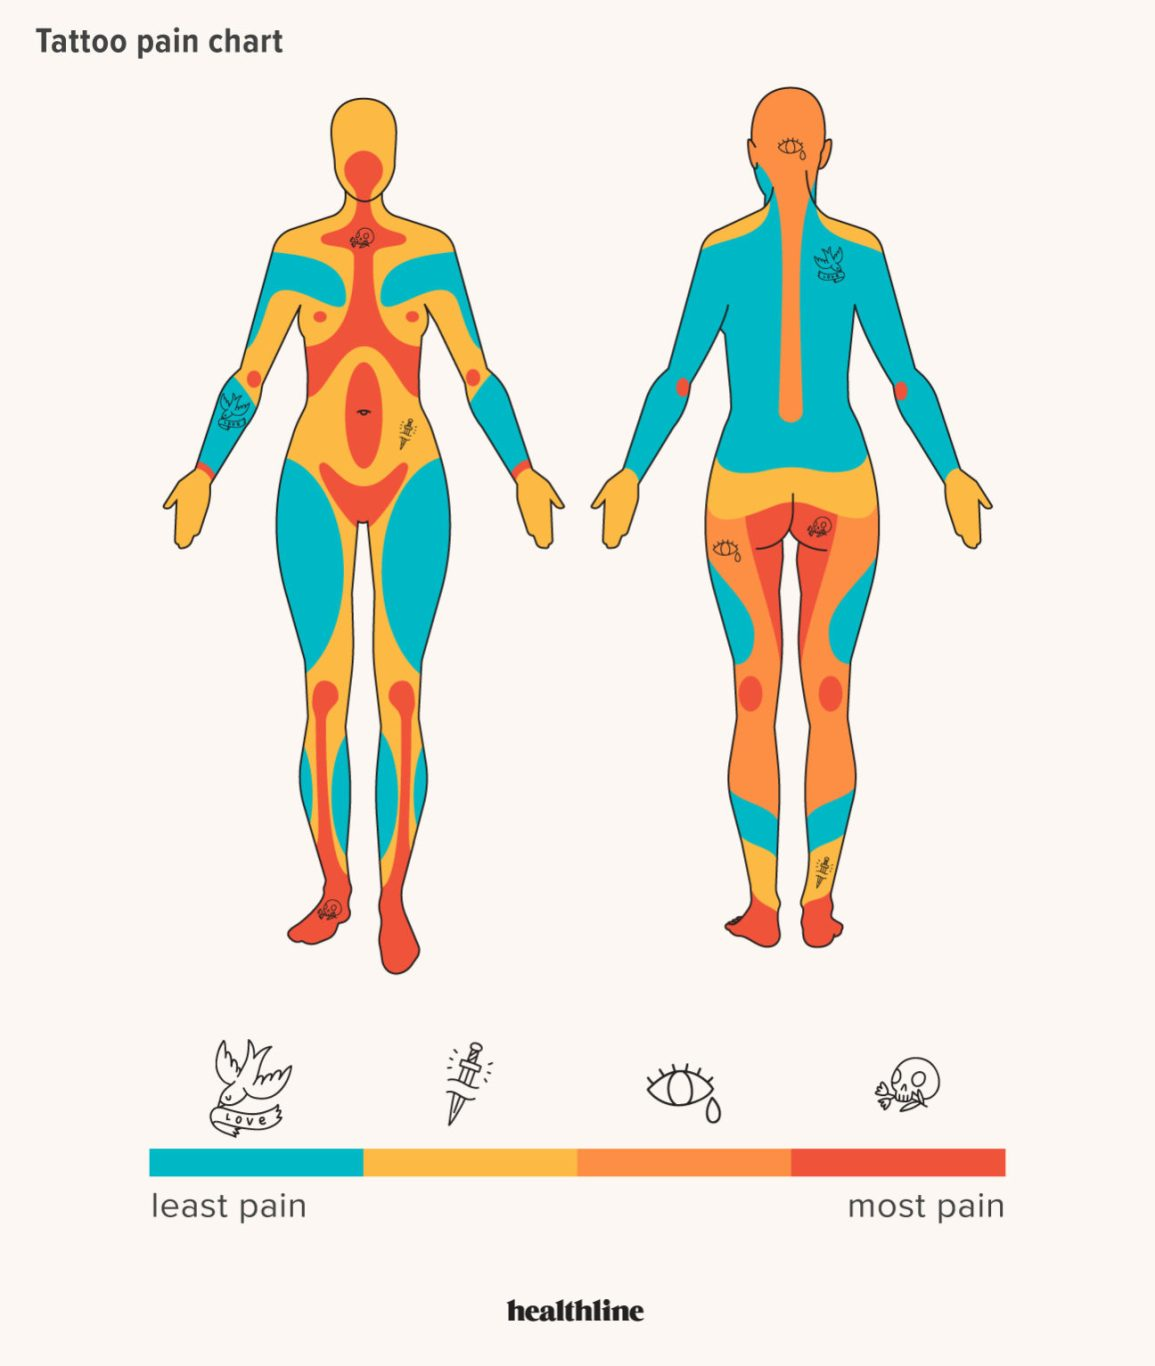 Tattoo Pain Chart Where It Hurts Most And Least And More